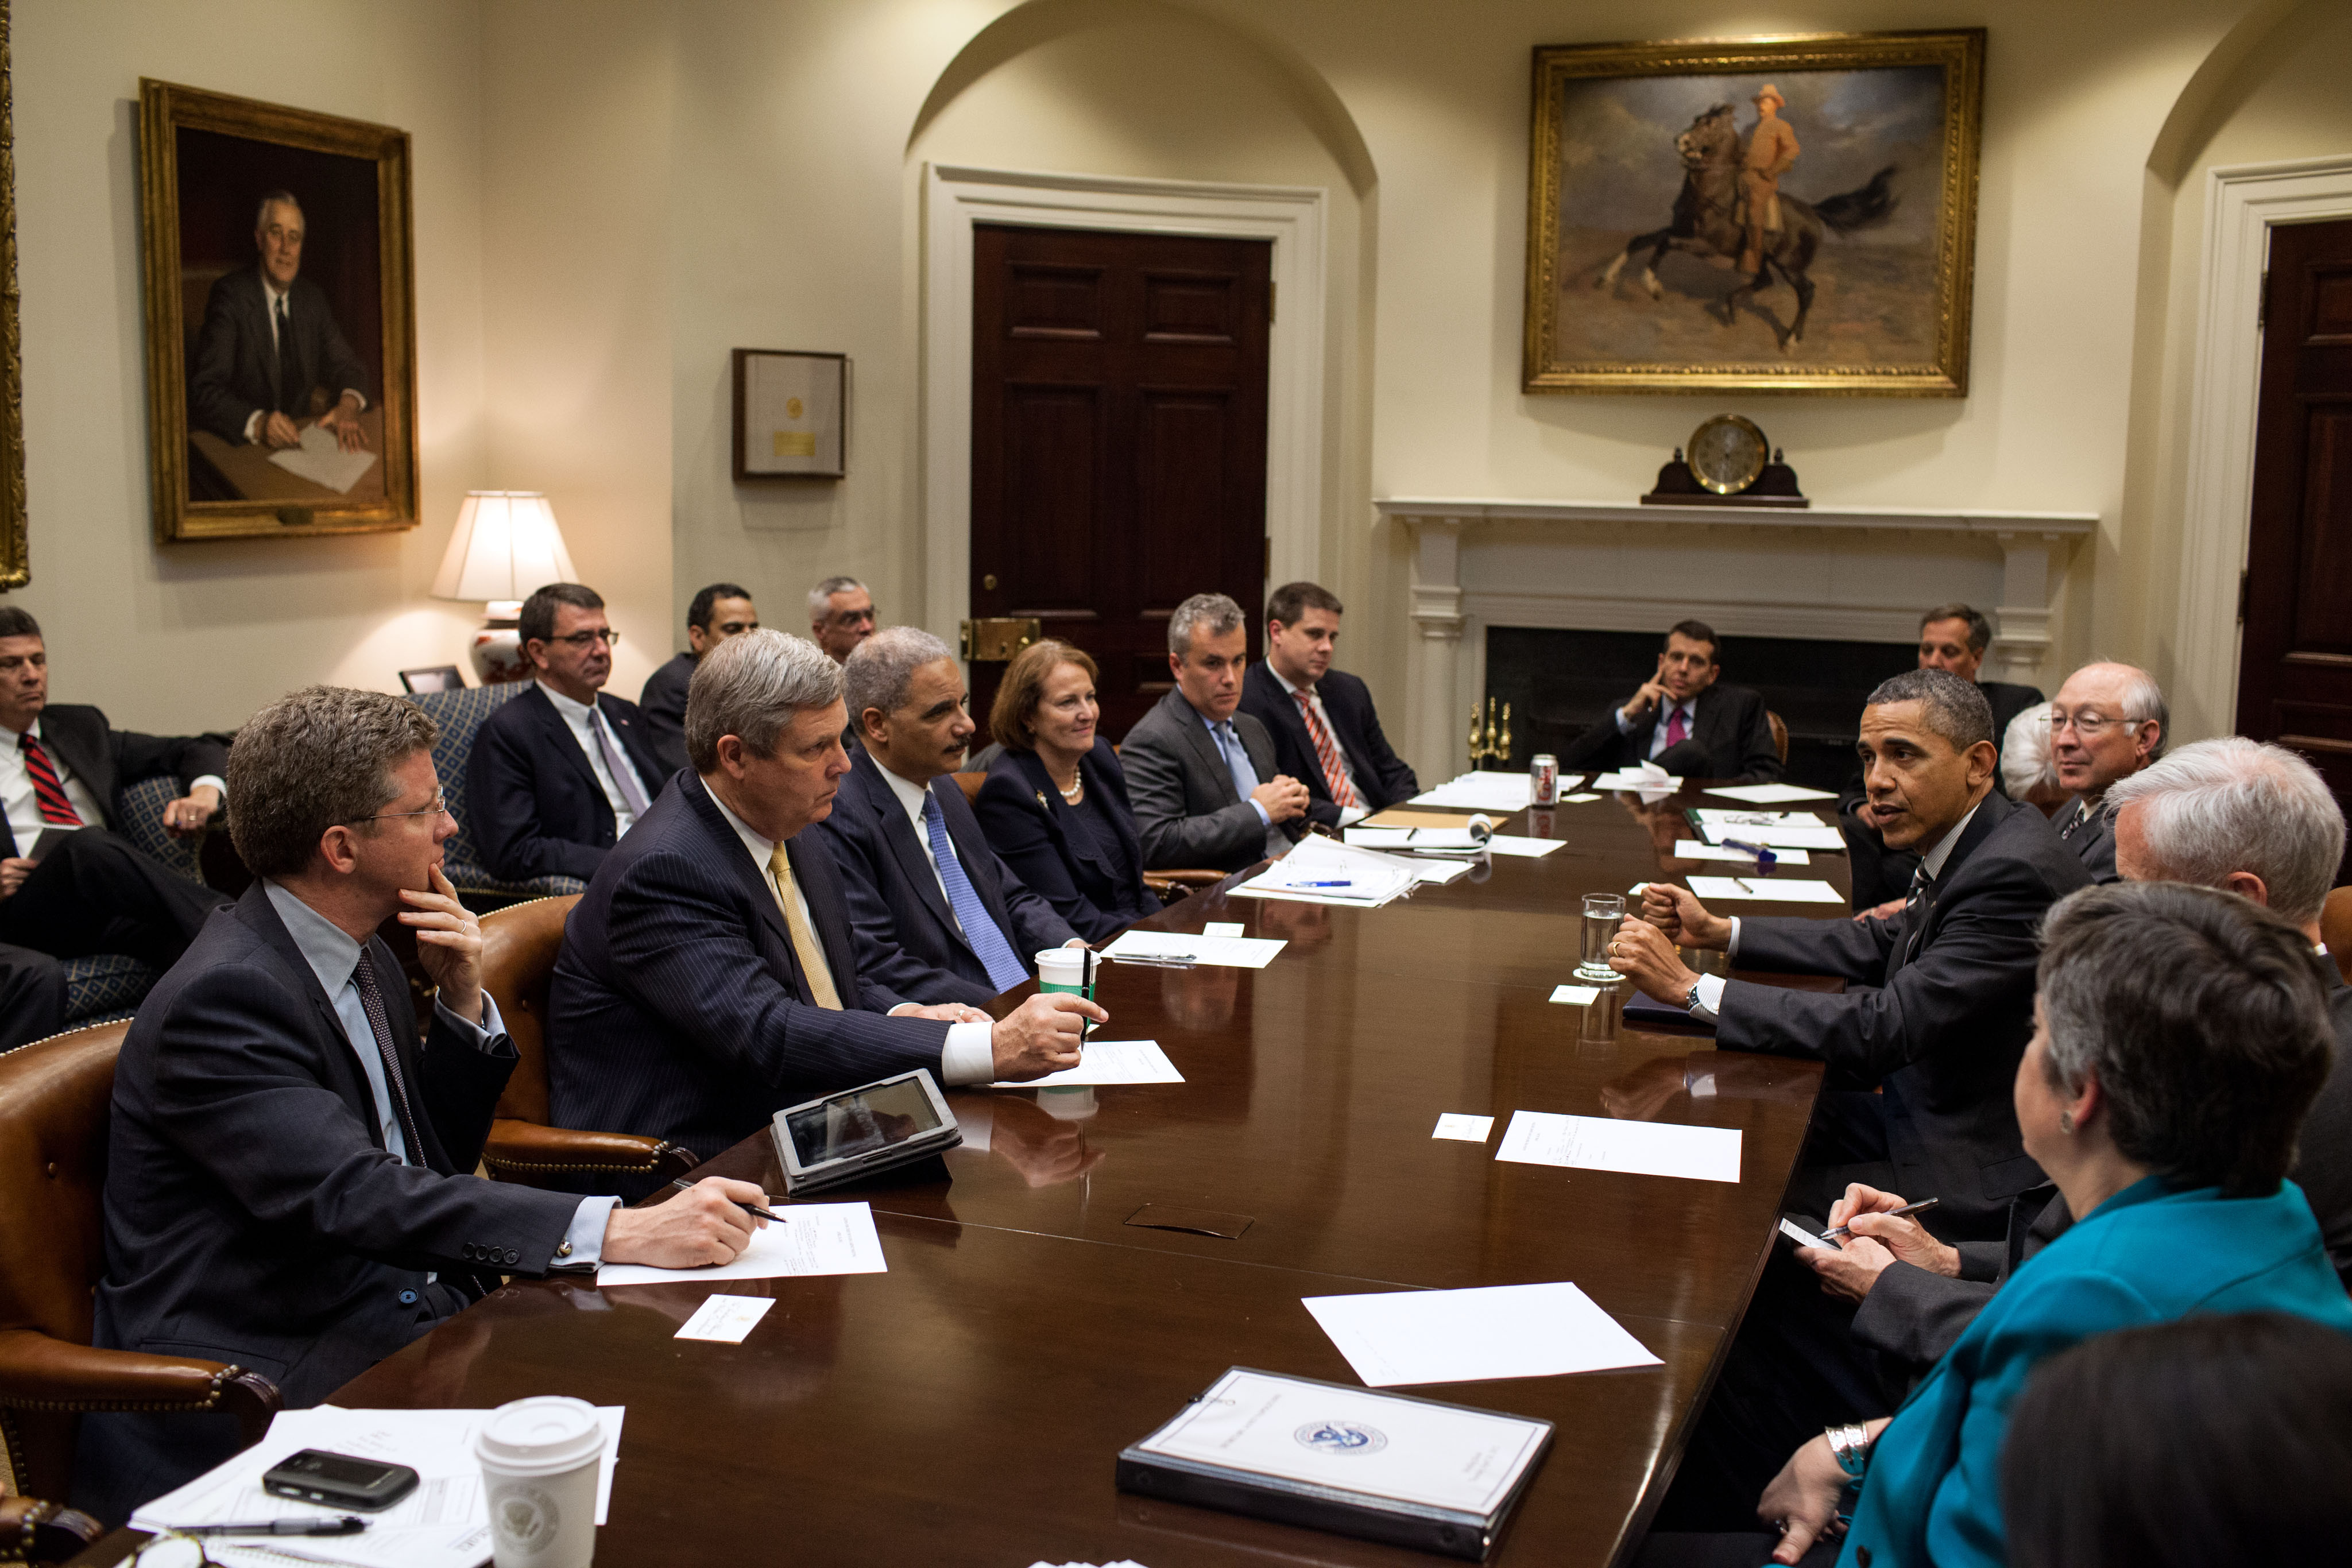 Best ideas about Obama Cabinet Members . Save or Pin File Barack Obama drops by a meeting with Cabinet members Now.